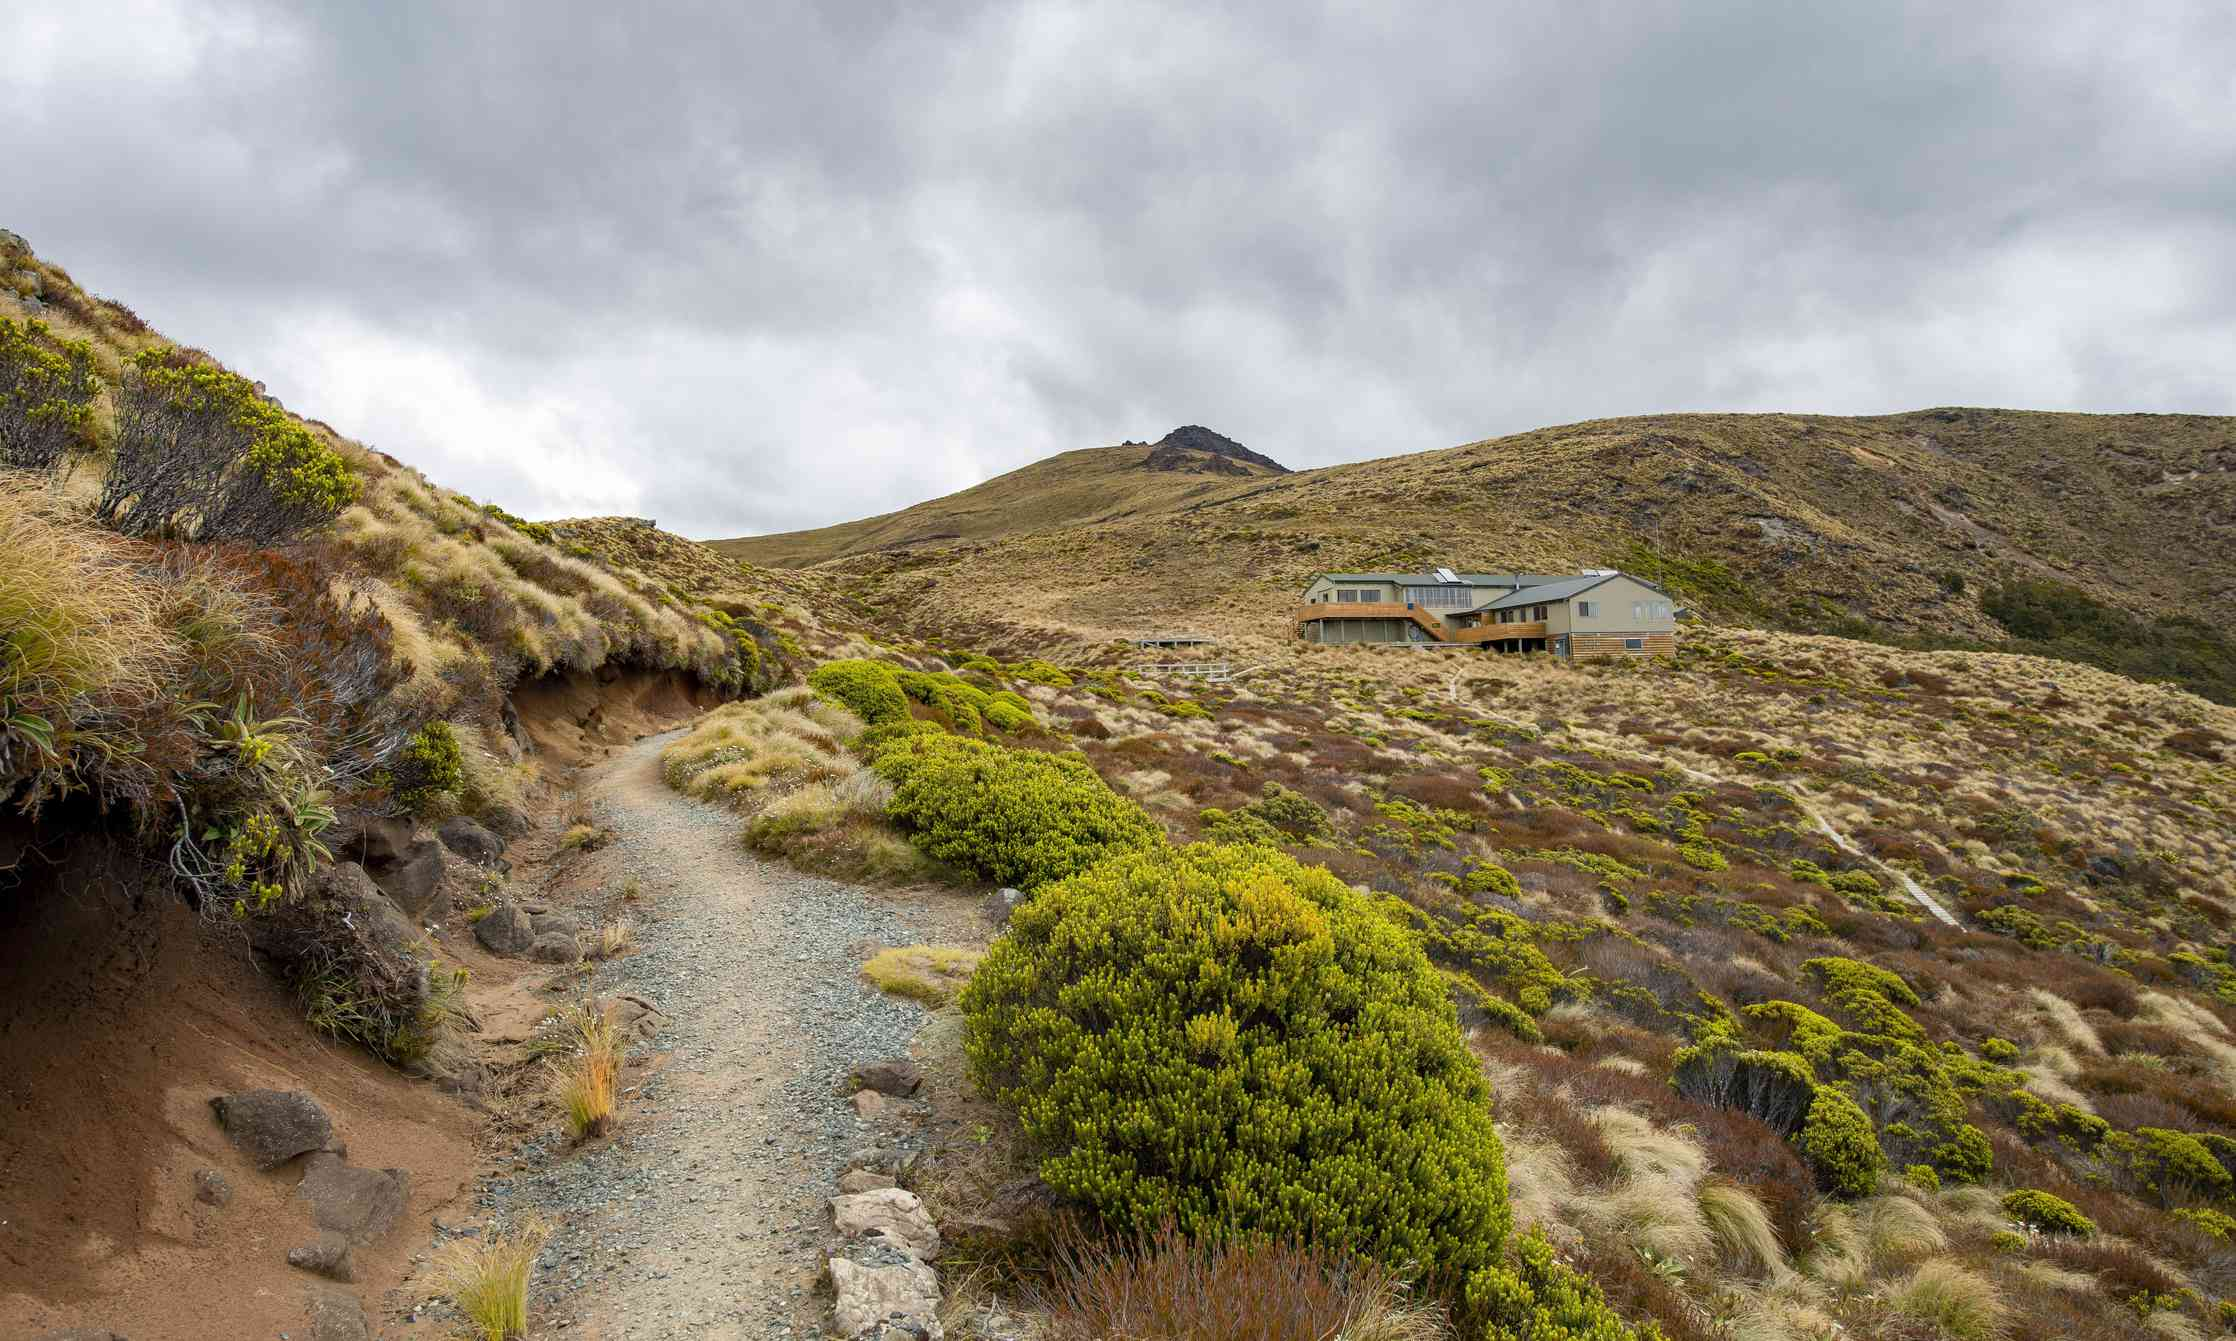 Kepler Track hiking trail, Luxmore Hat, Fiordland National Park, Southland, South Island, New Zealand